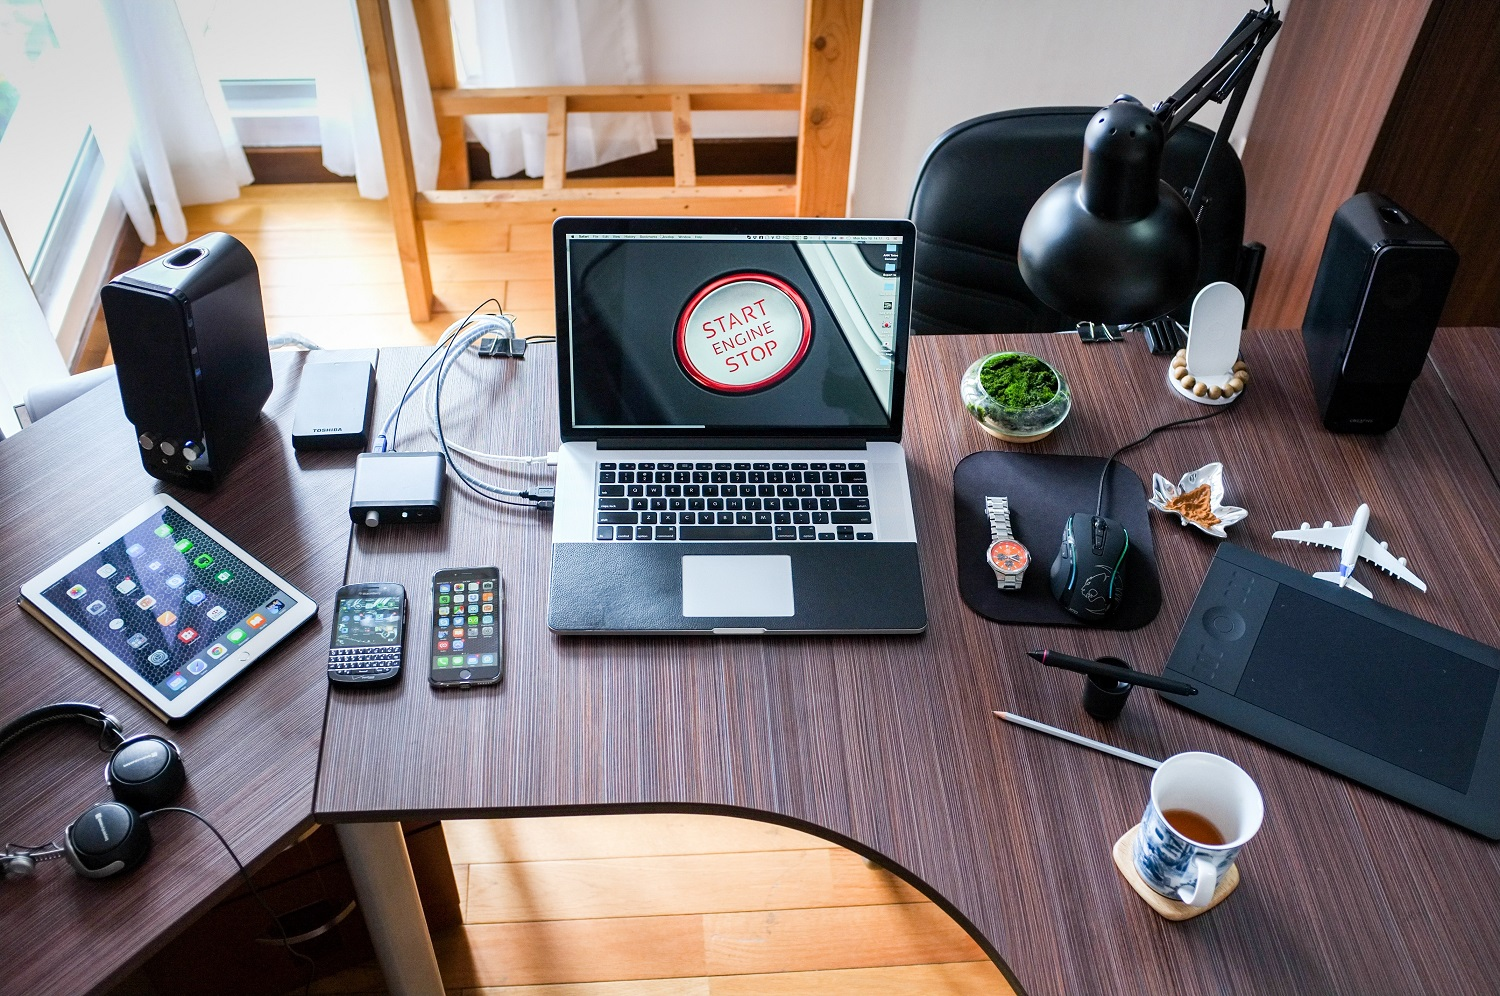 Four Ways To Make Technology Work For An At-Home Business